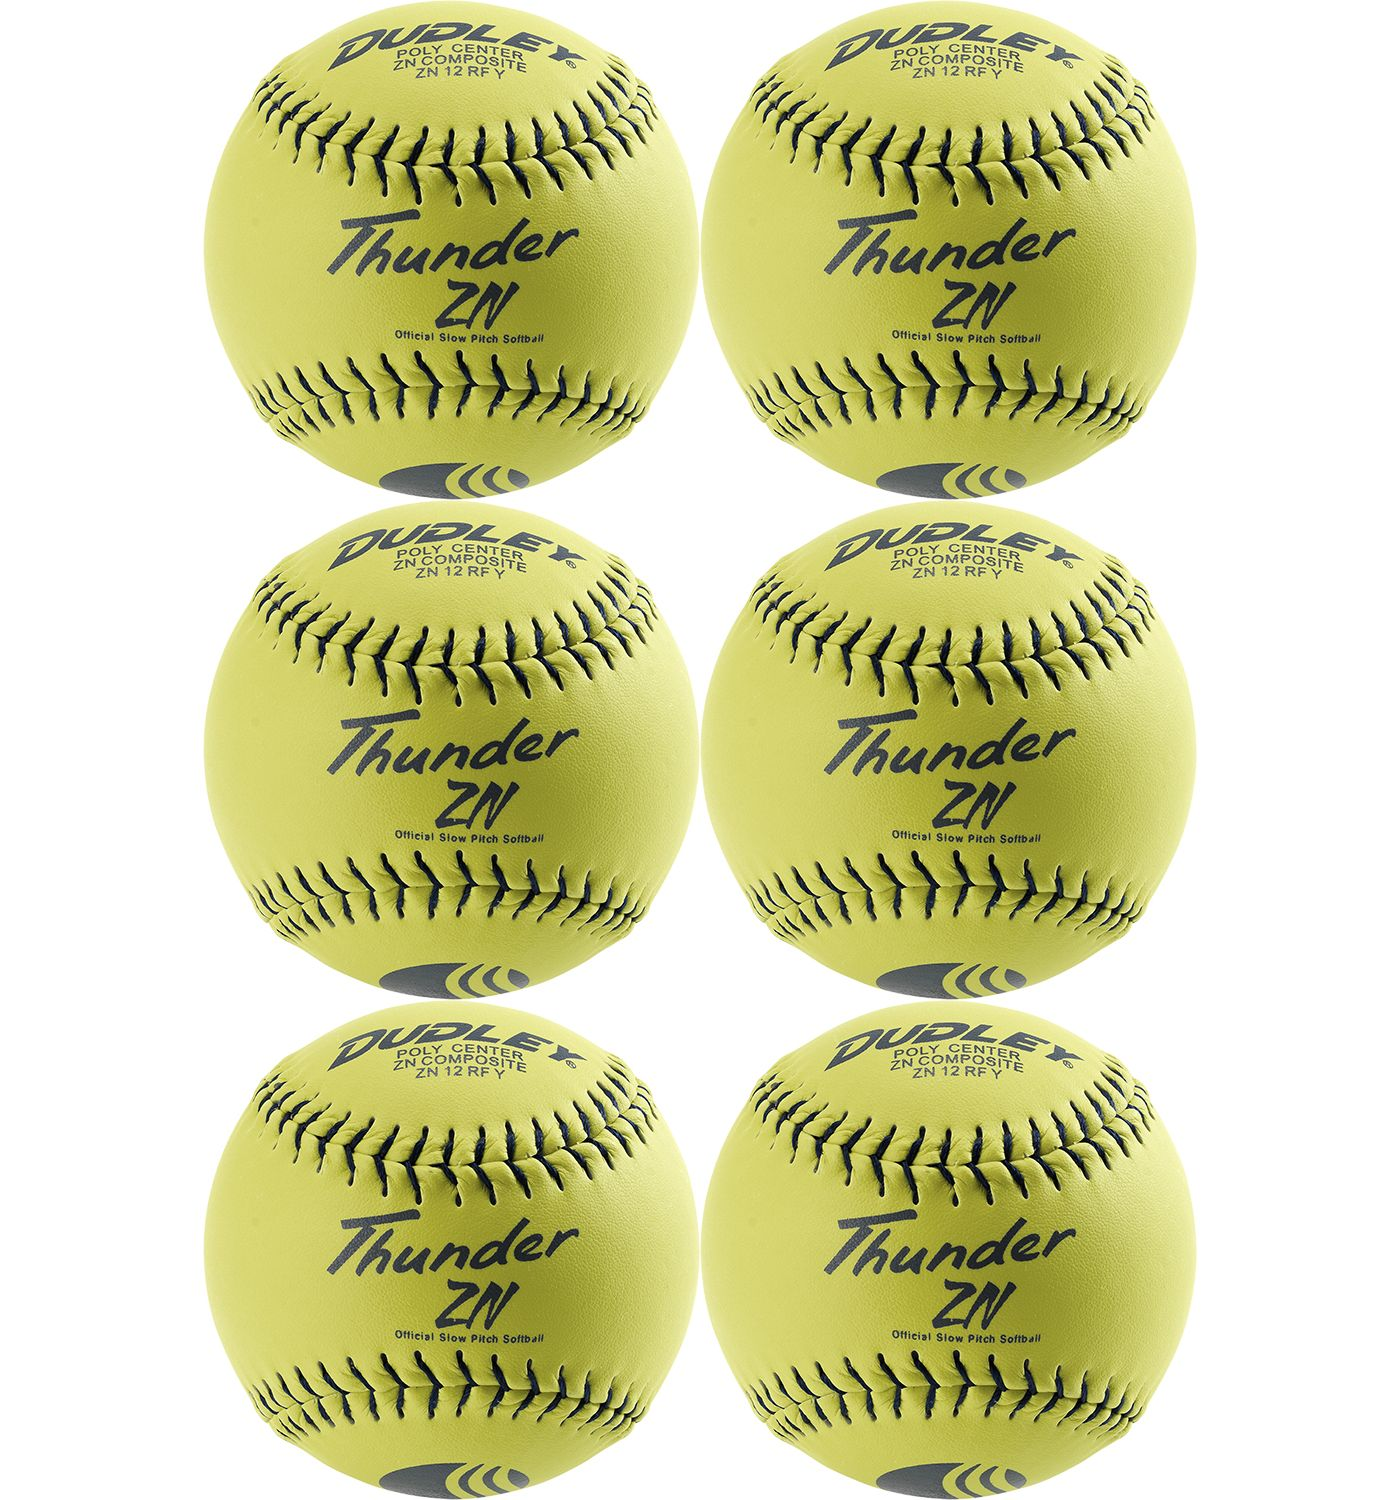 """Dudley 12"""" USSSA Thunder ZN Slow Pitch Softballs - 6 Pack"""